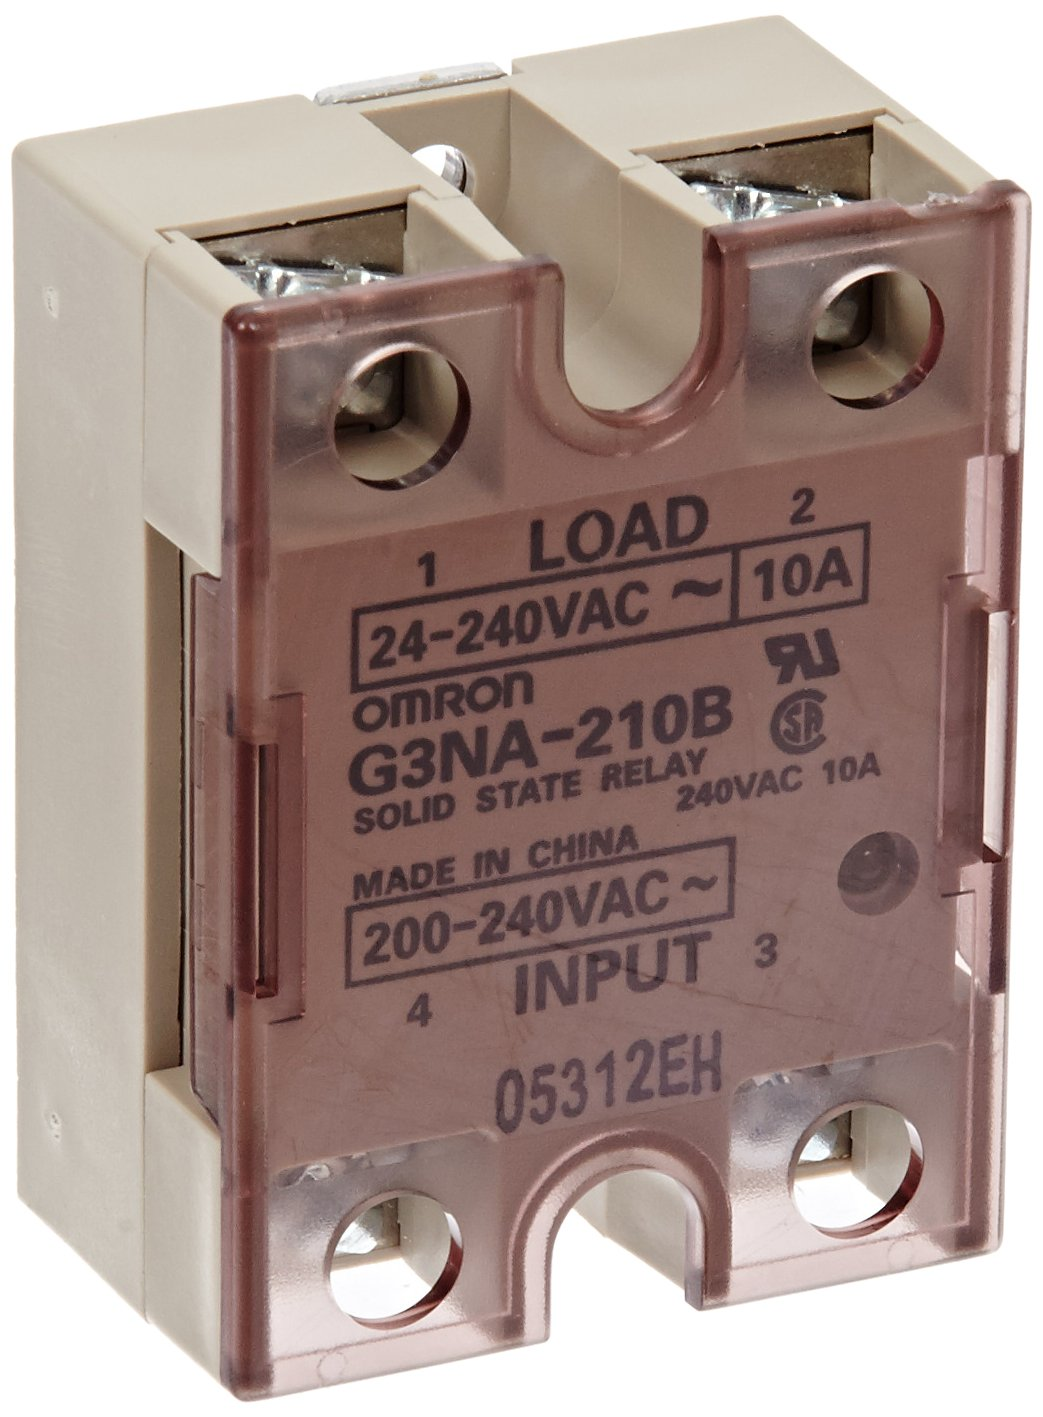 Omron GNABAC Solid State Relay Zero Cross Function - Electric relay invented